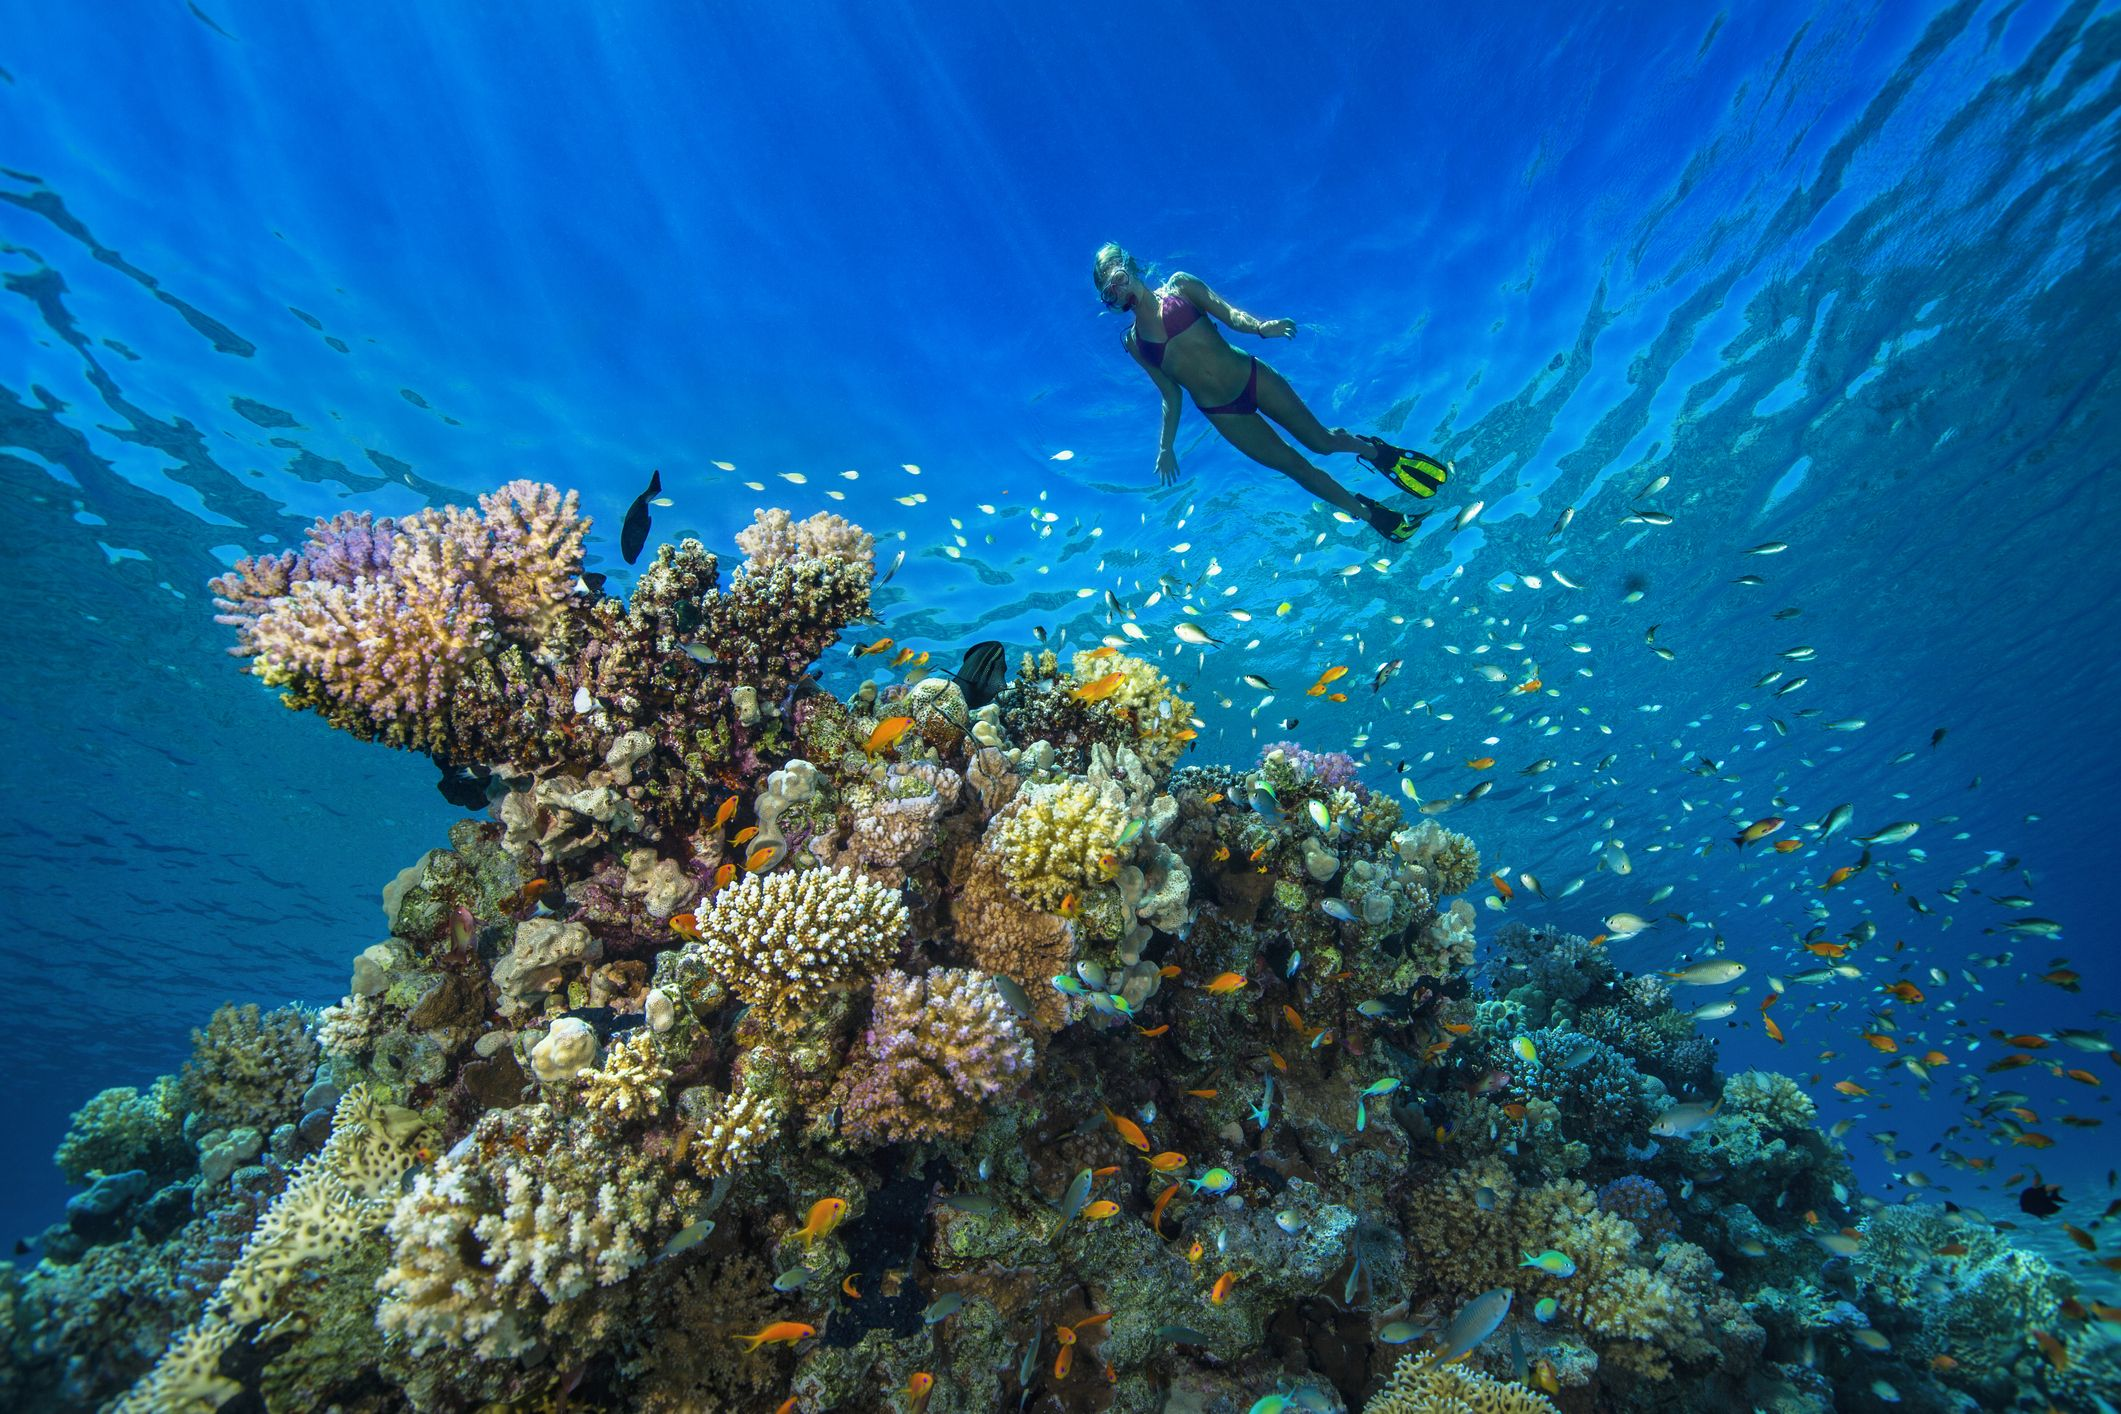 These Luxury Resorts Are Helping Save Coral Reefs